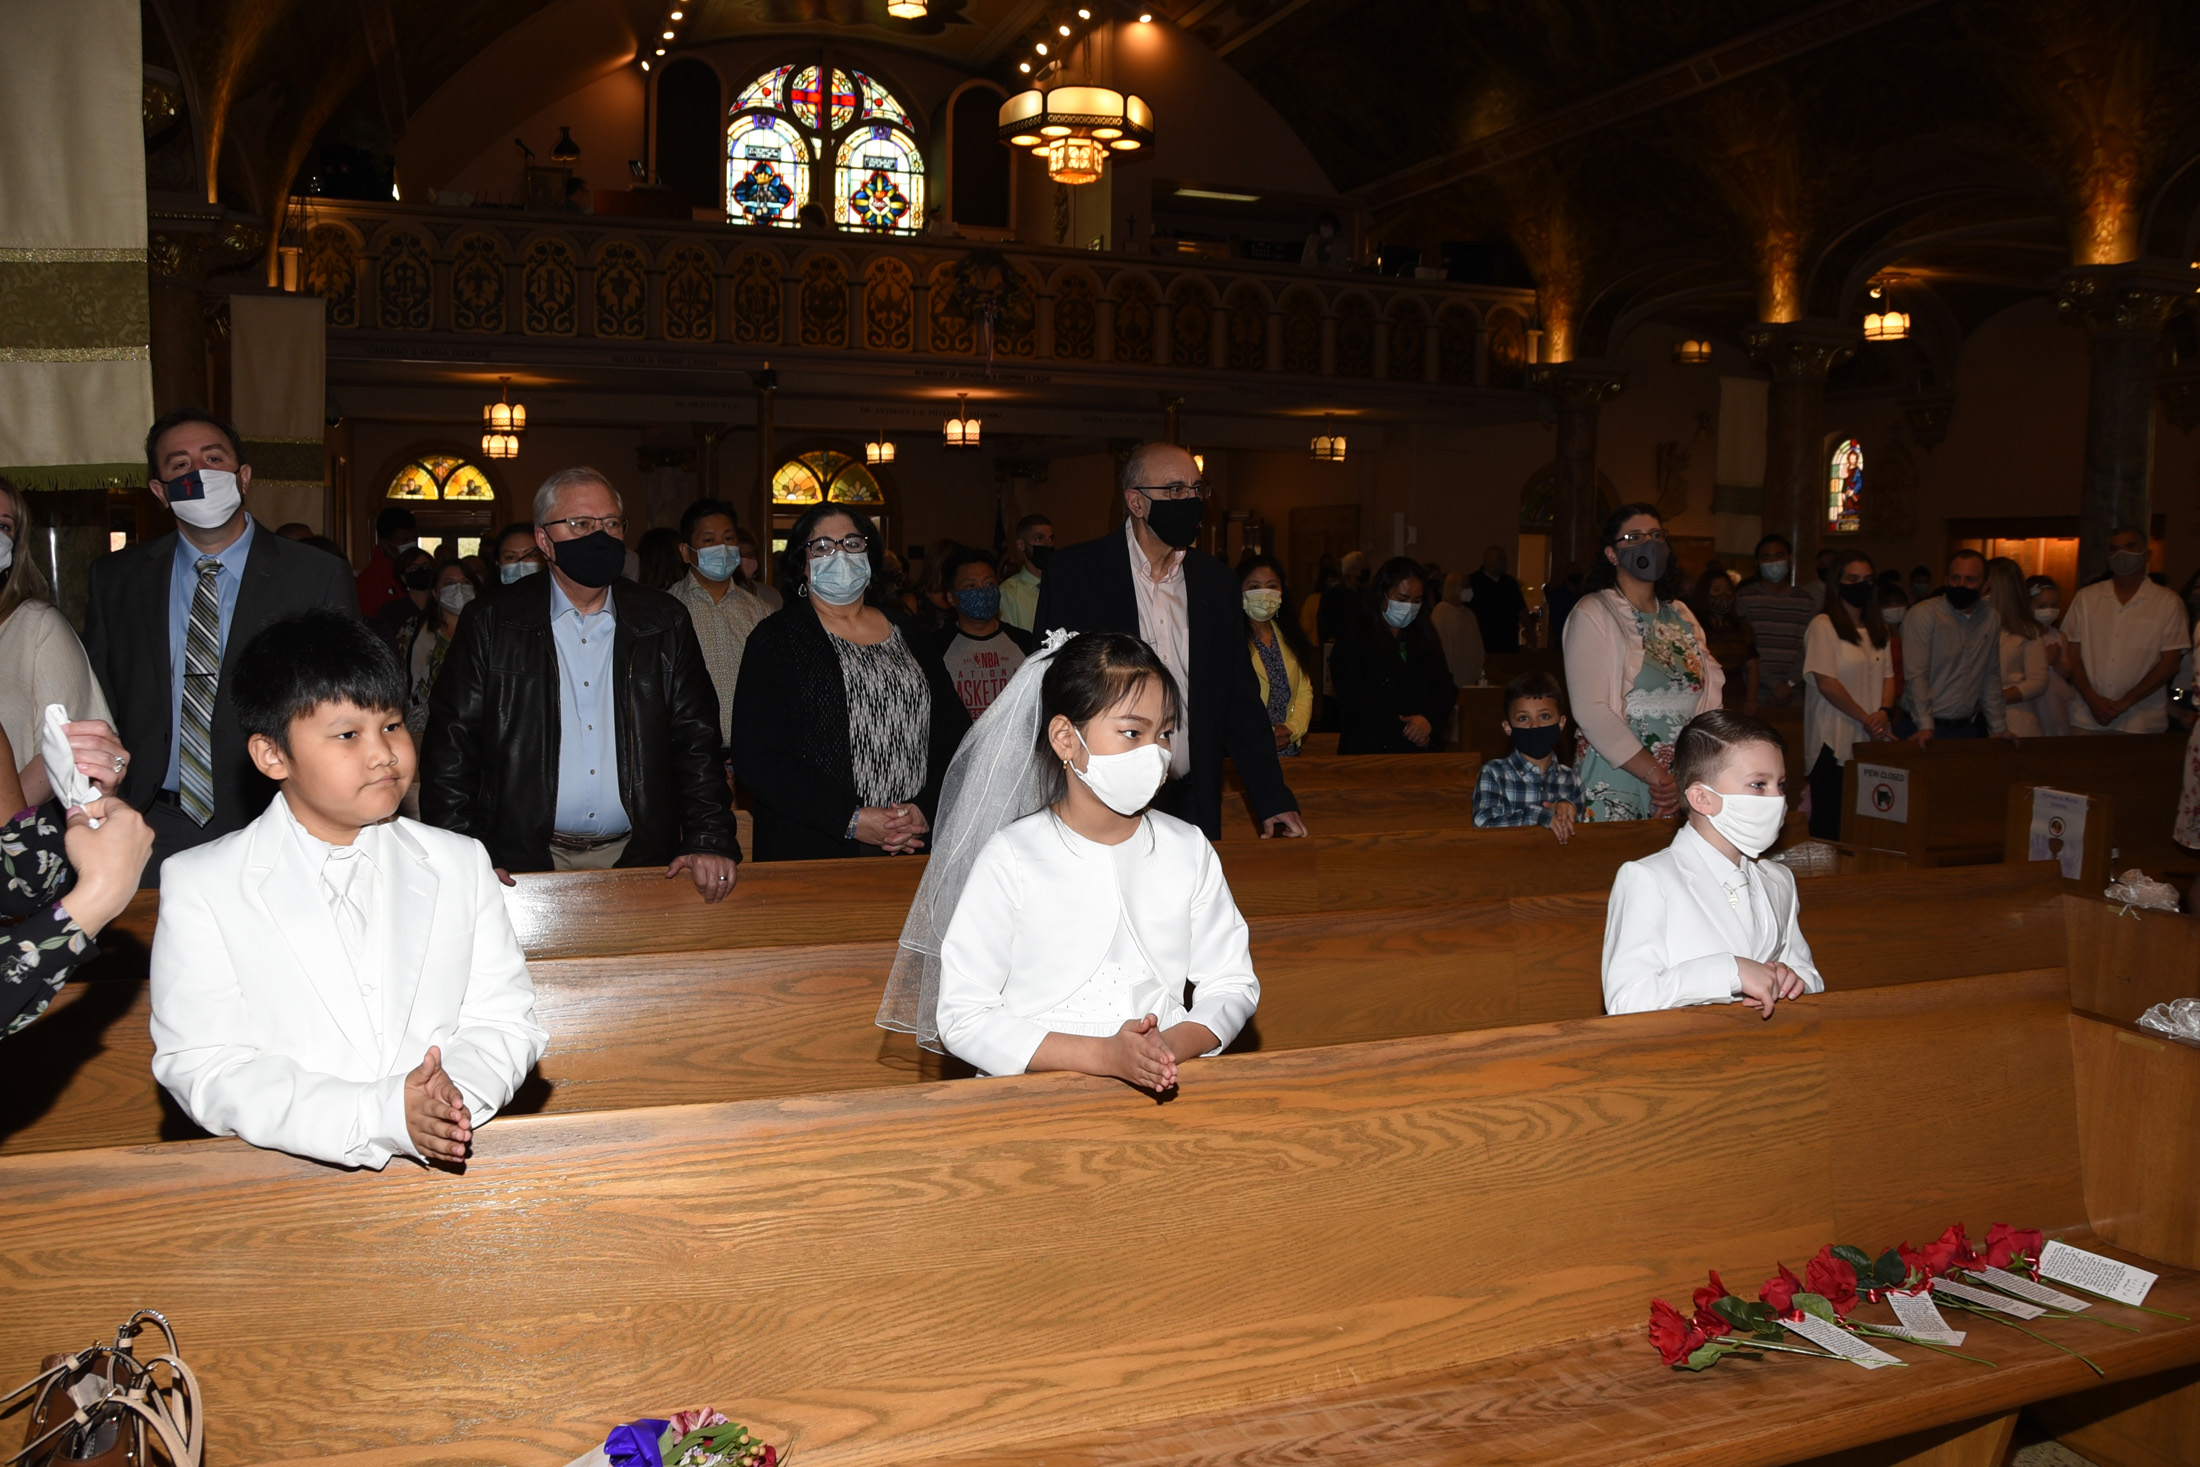 FIRST-COMMUNION-MAY-2-2021-1001001052